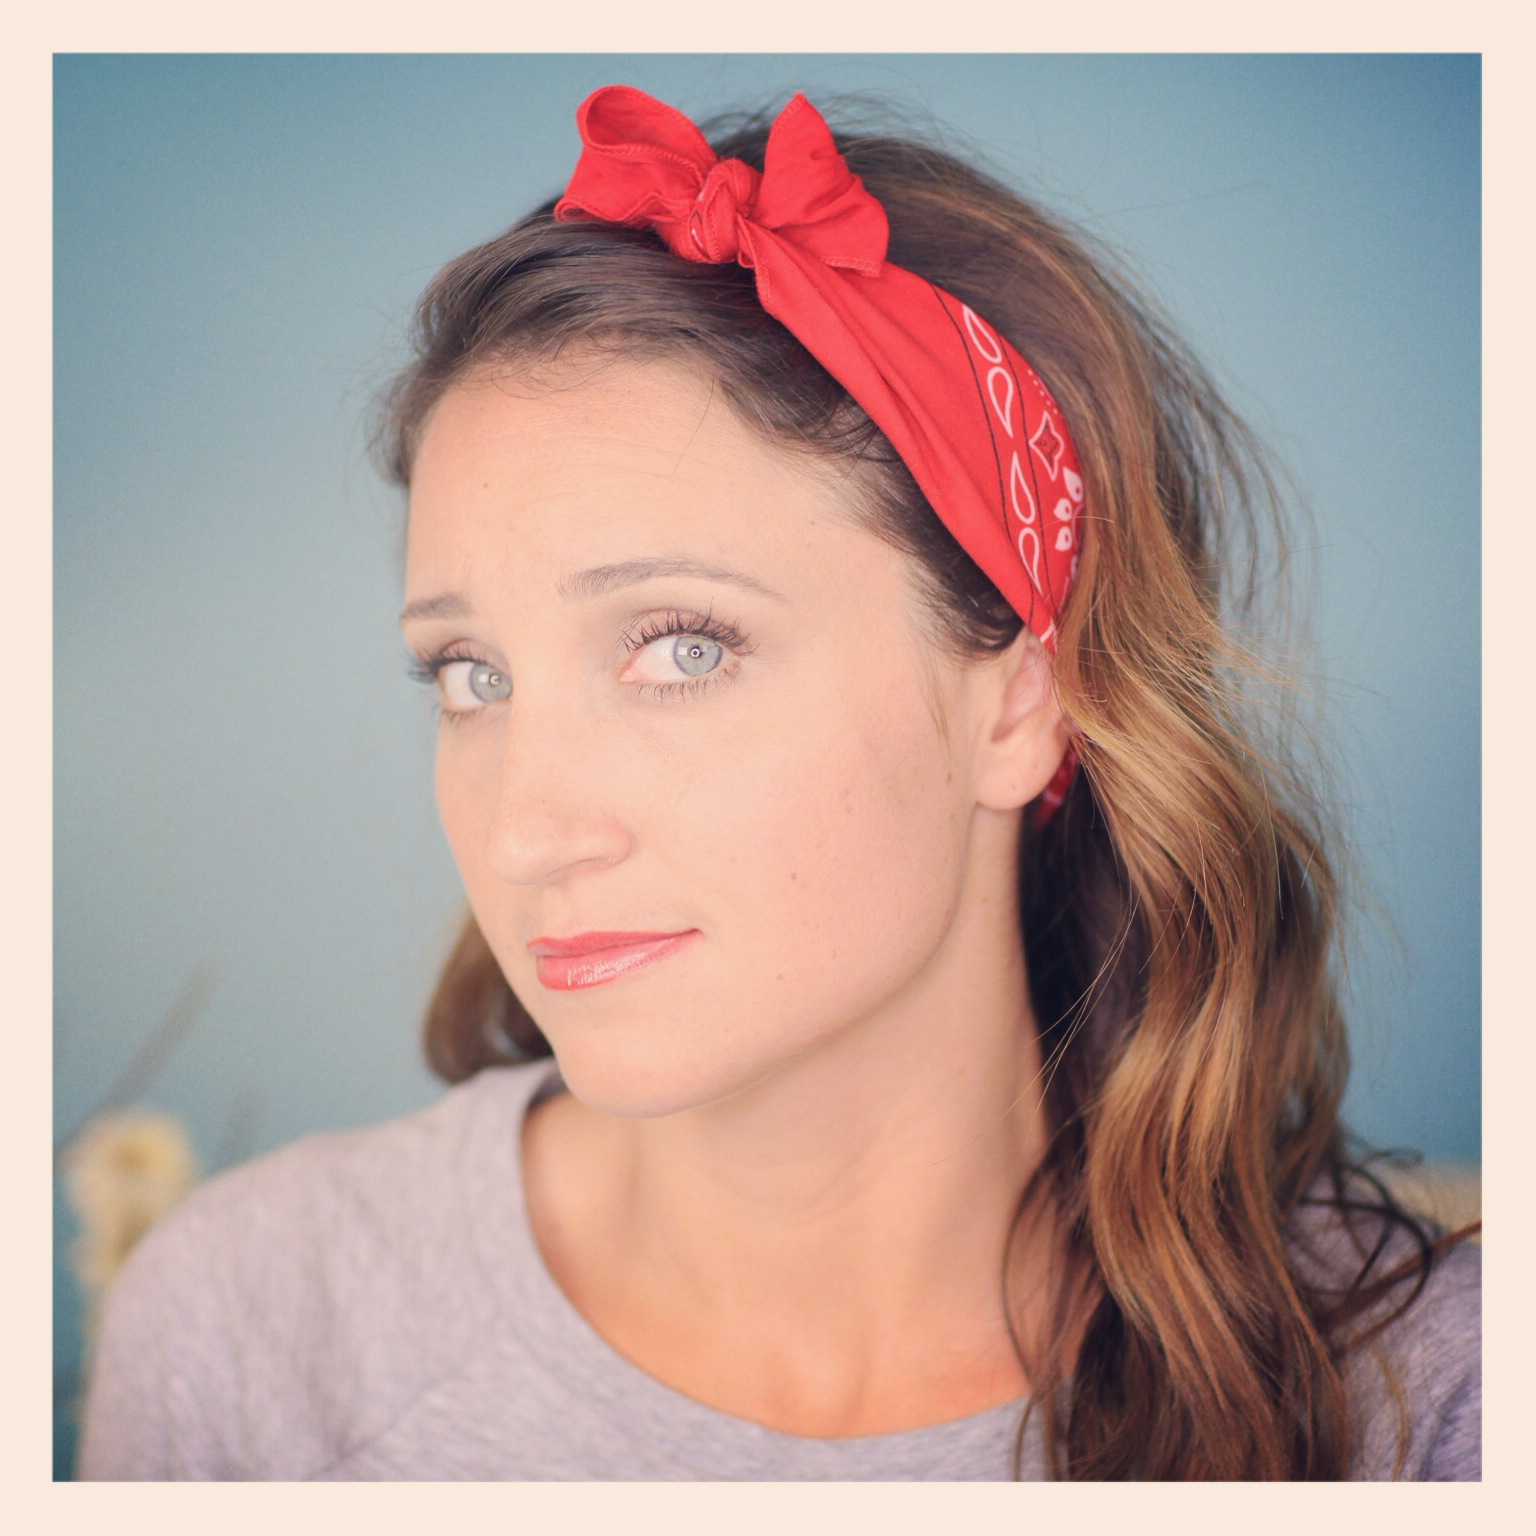 Six Diy 1 Minute Bandana Hairstyles (View 17 of 20)